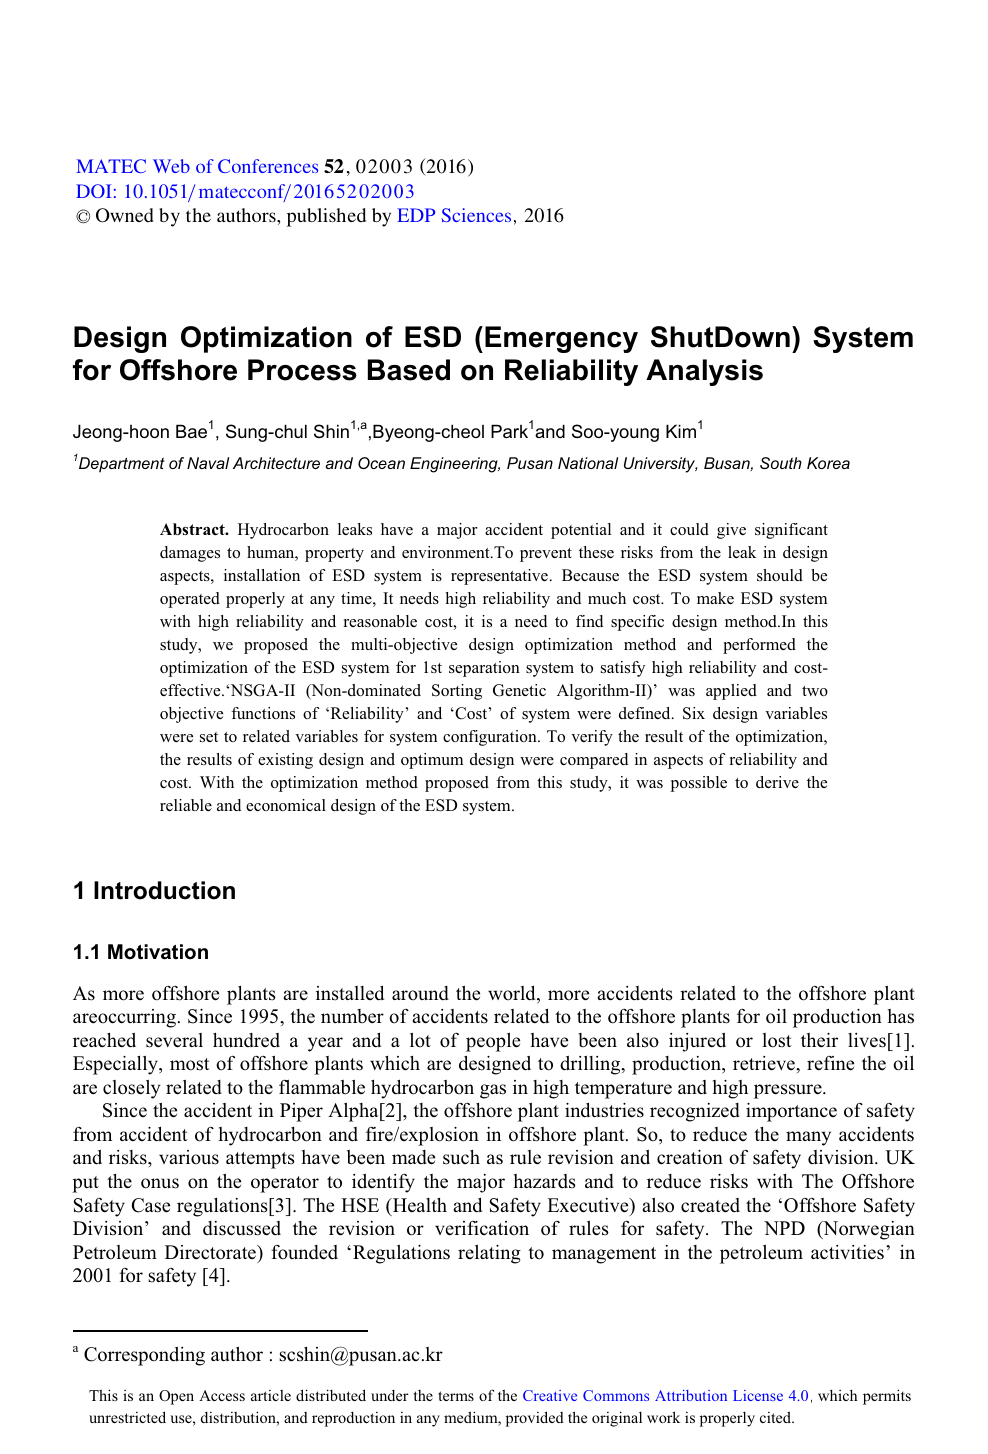 Design Optimization Of Esd Emergency Shutdown System For Offshore Process Based On Reliability Analysis Topic Of Research Paper In Mechanical Engineering Download Scholarly Article Pdf And Read For Free On Cyberleninka